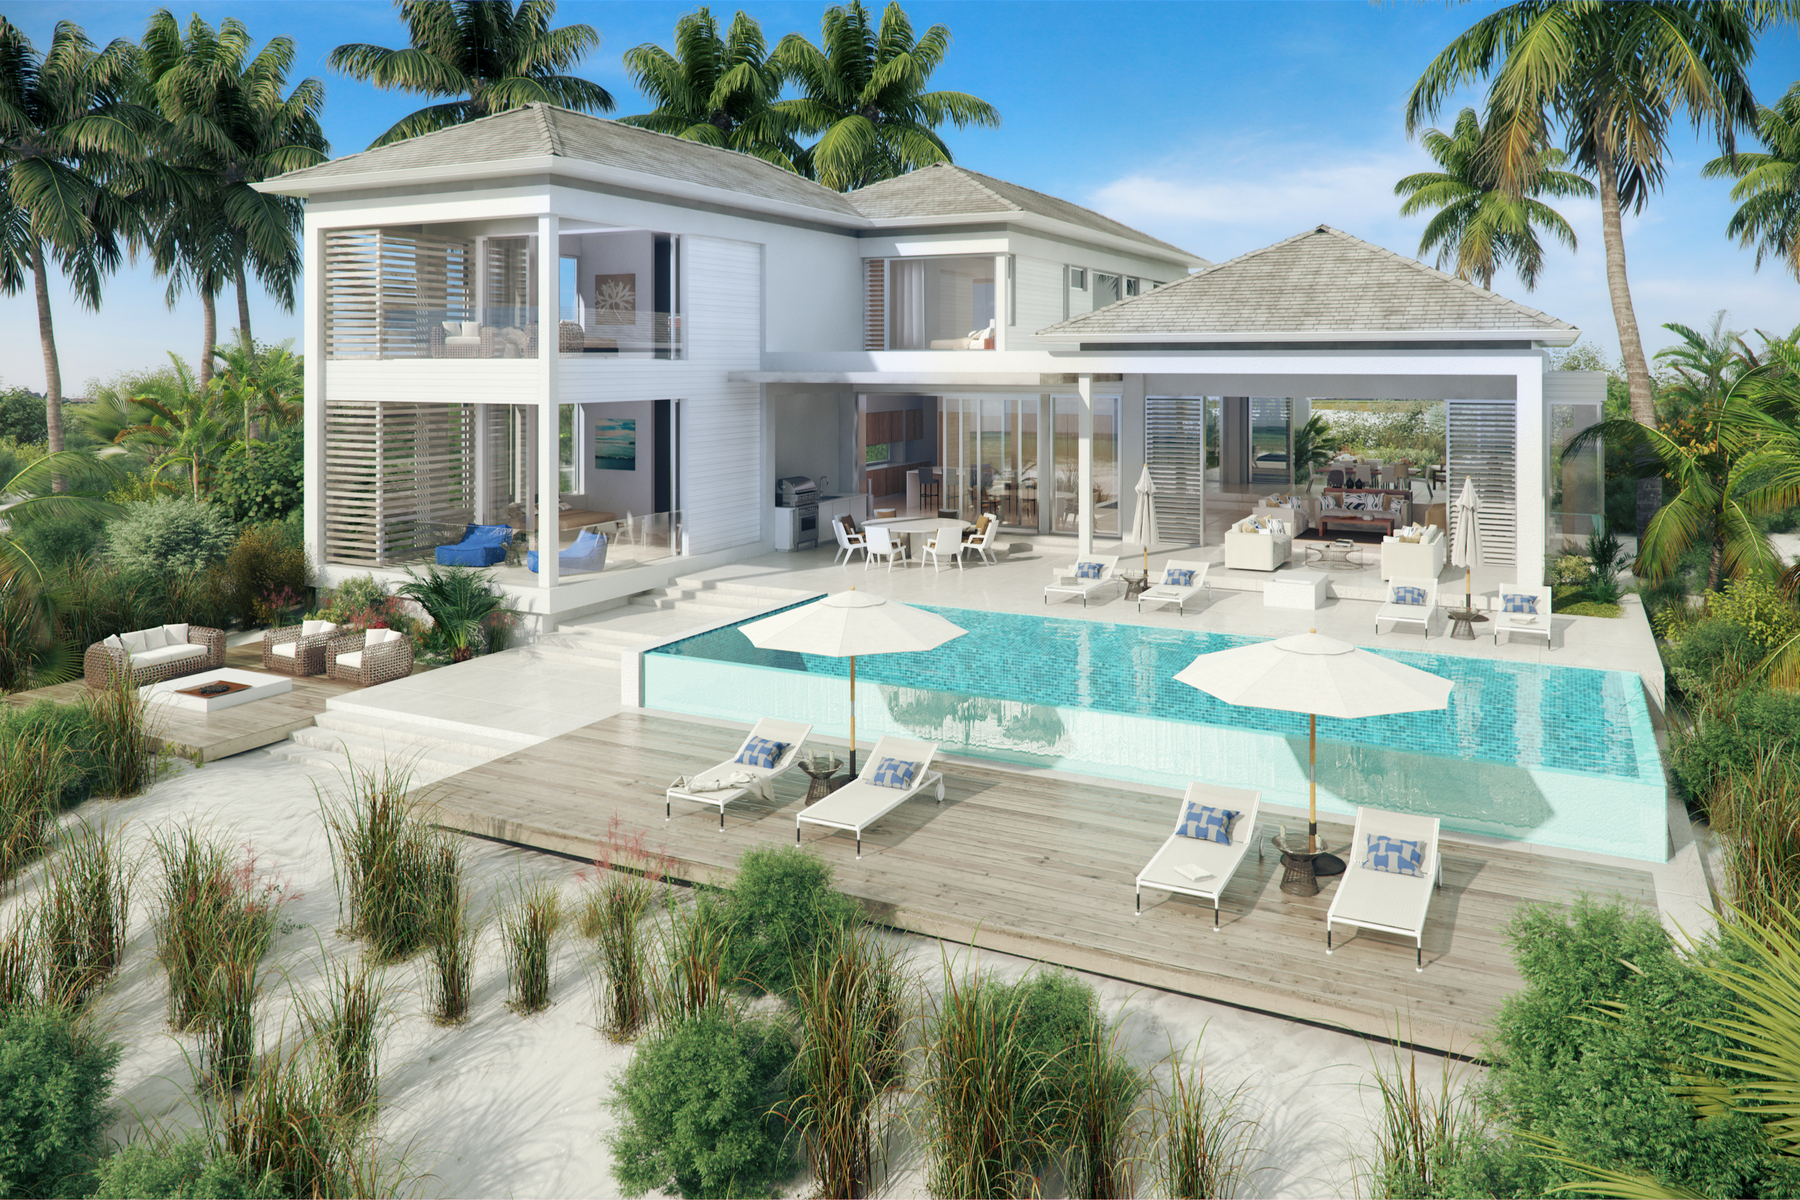 Single Family Home for Sale at BEACH ENCLAVE GRACE BAY Design A Beachfront Grace Bay, Providenciales TCI Turks And Caicos Islands